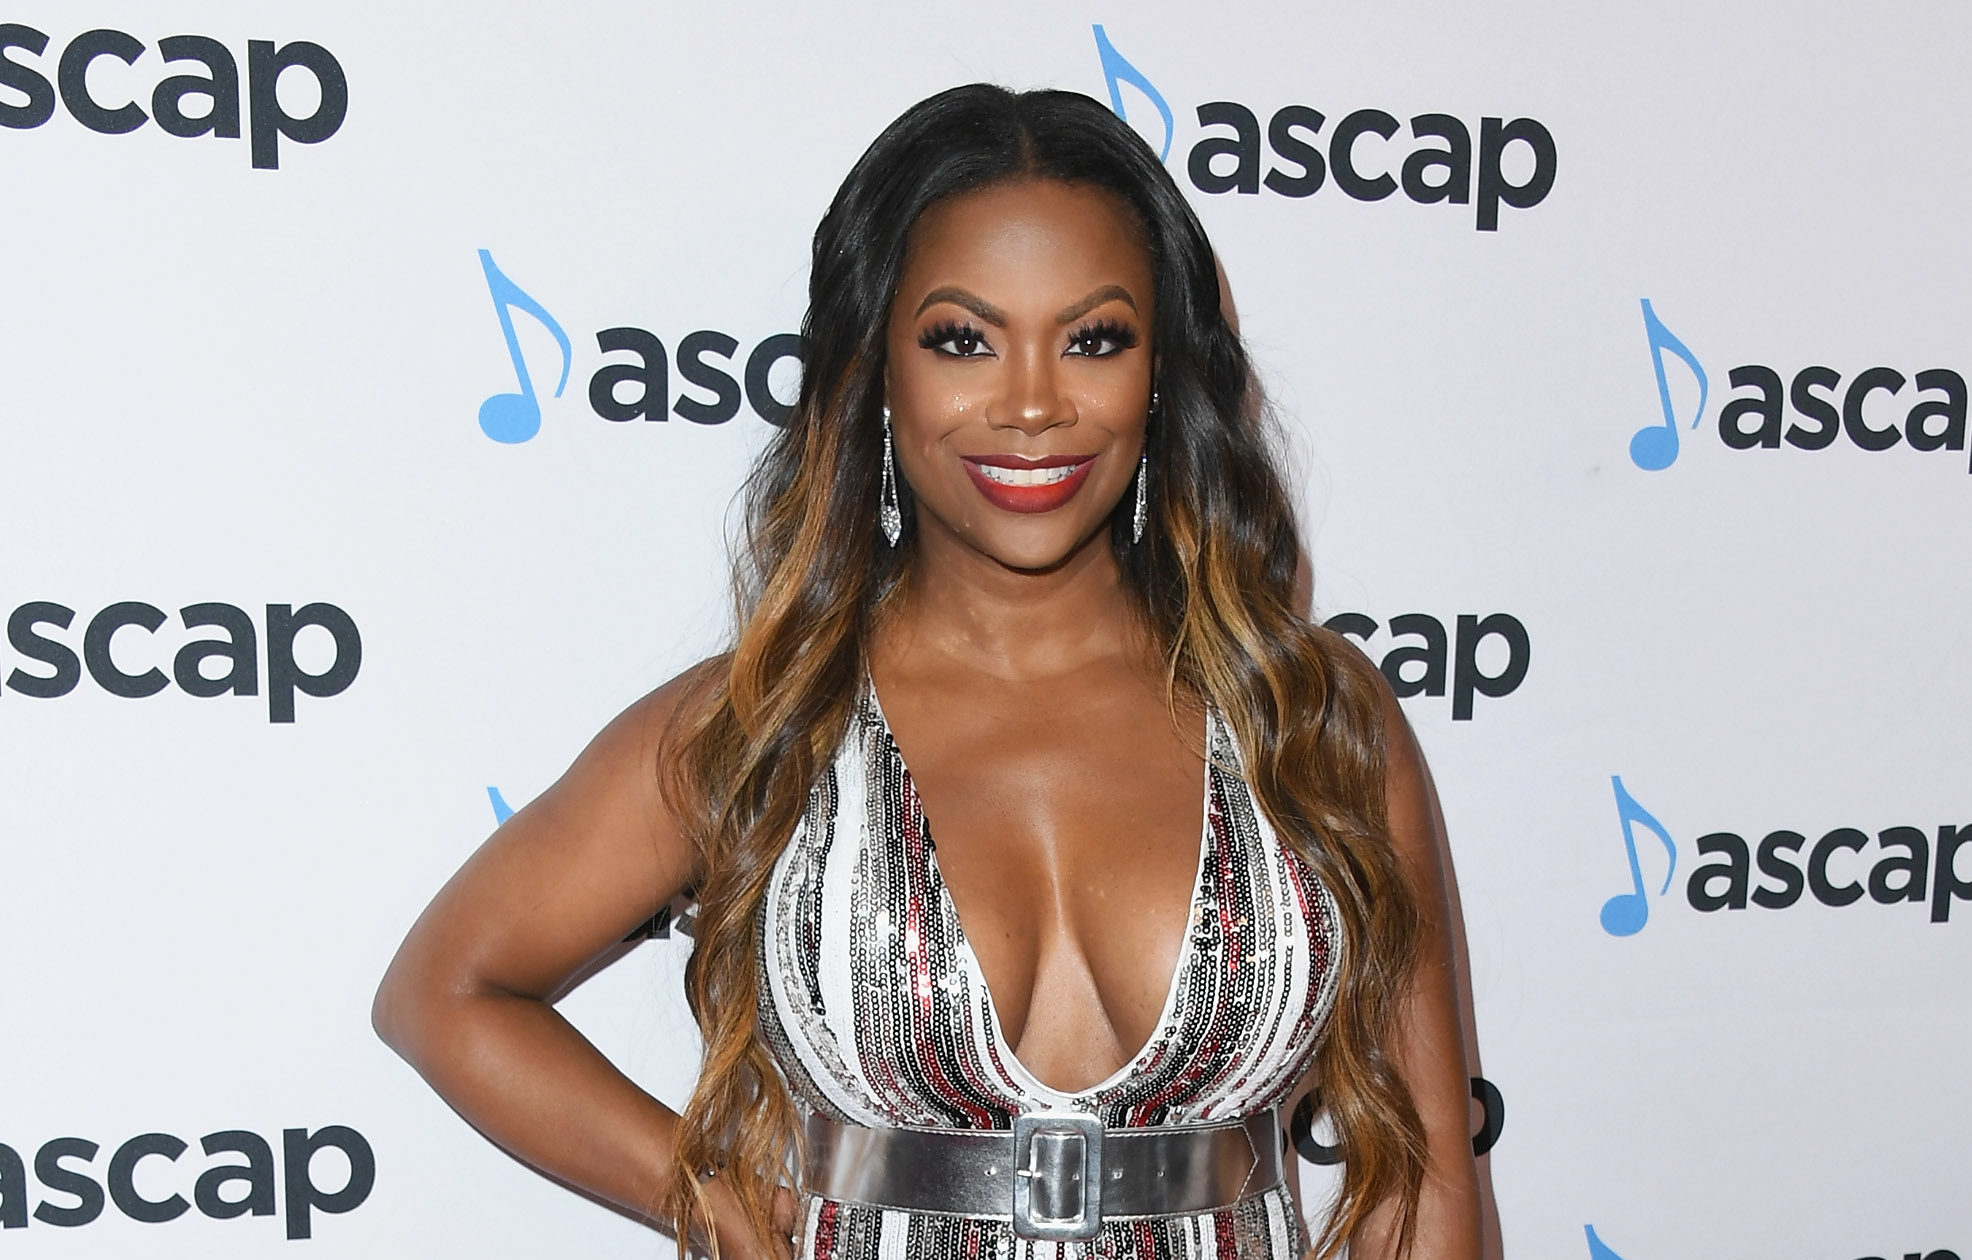 Kandi Burruss Cannot Wait Until 'The Chi' Comes Back Next Month